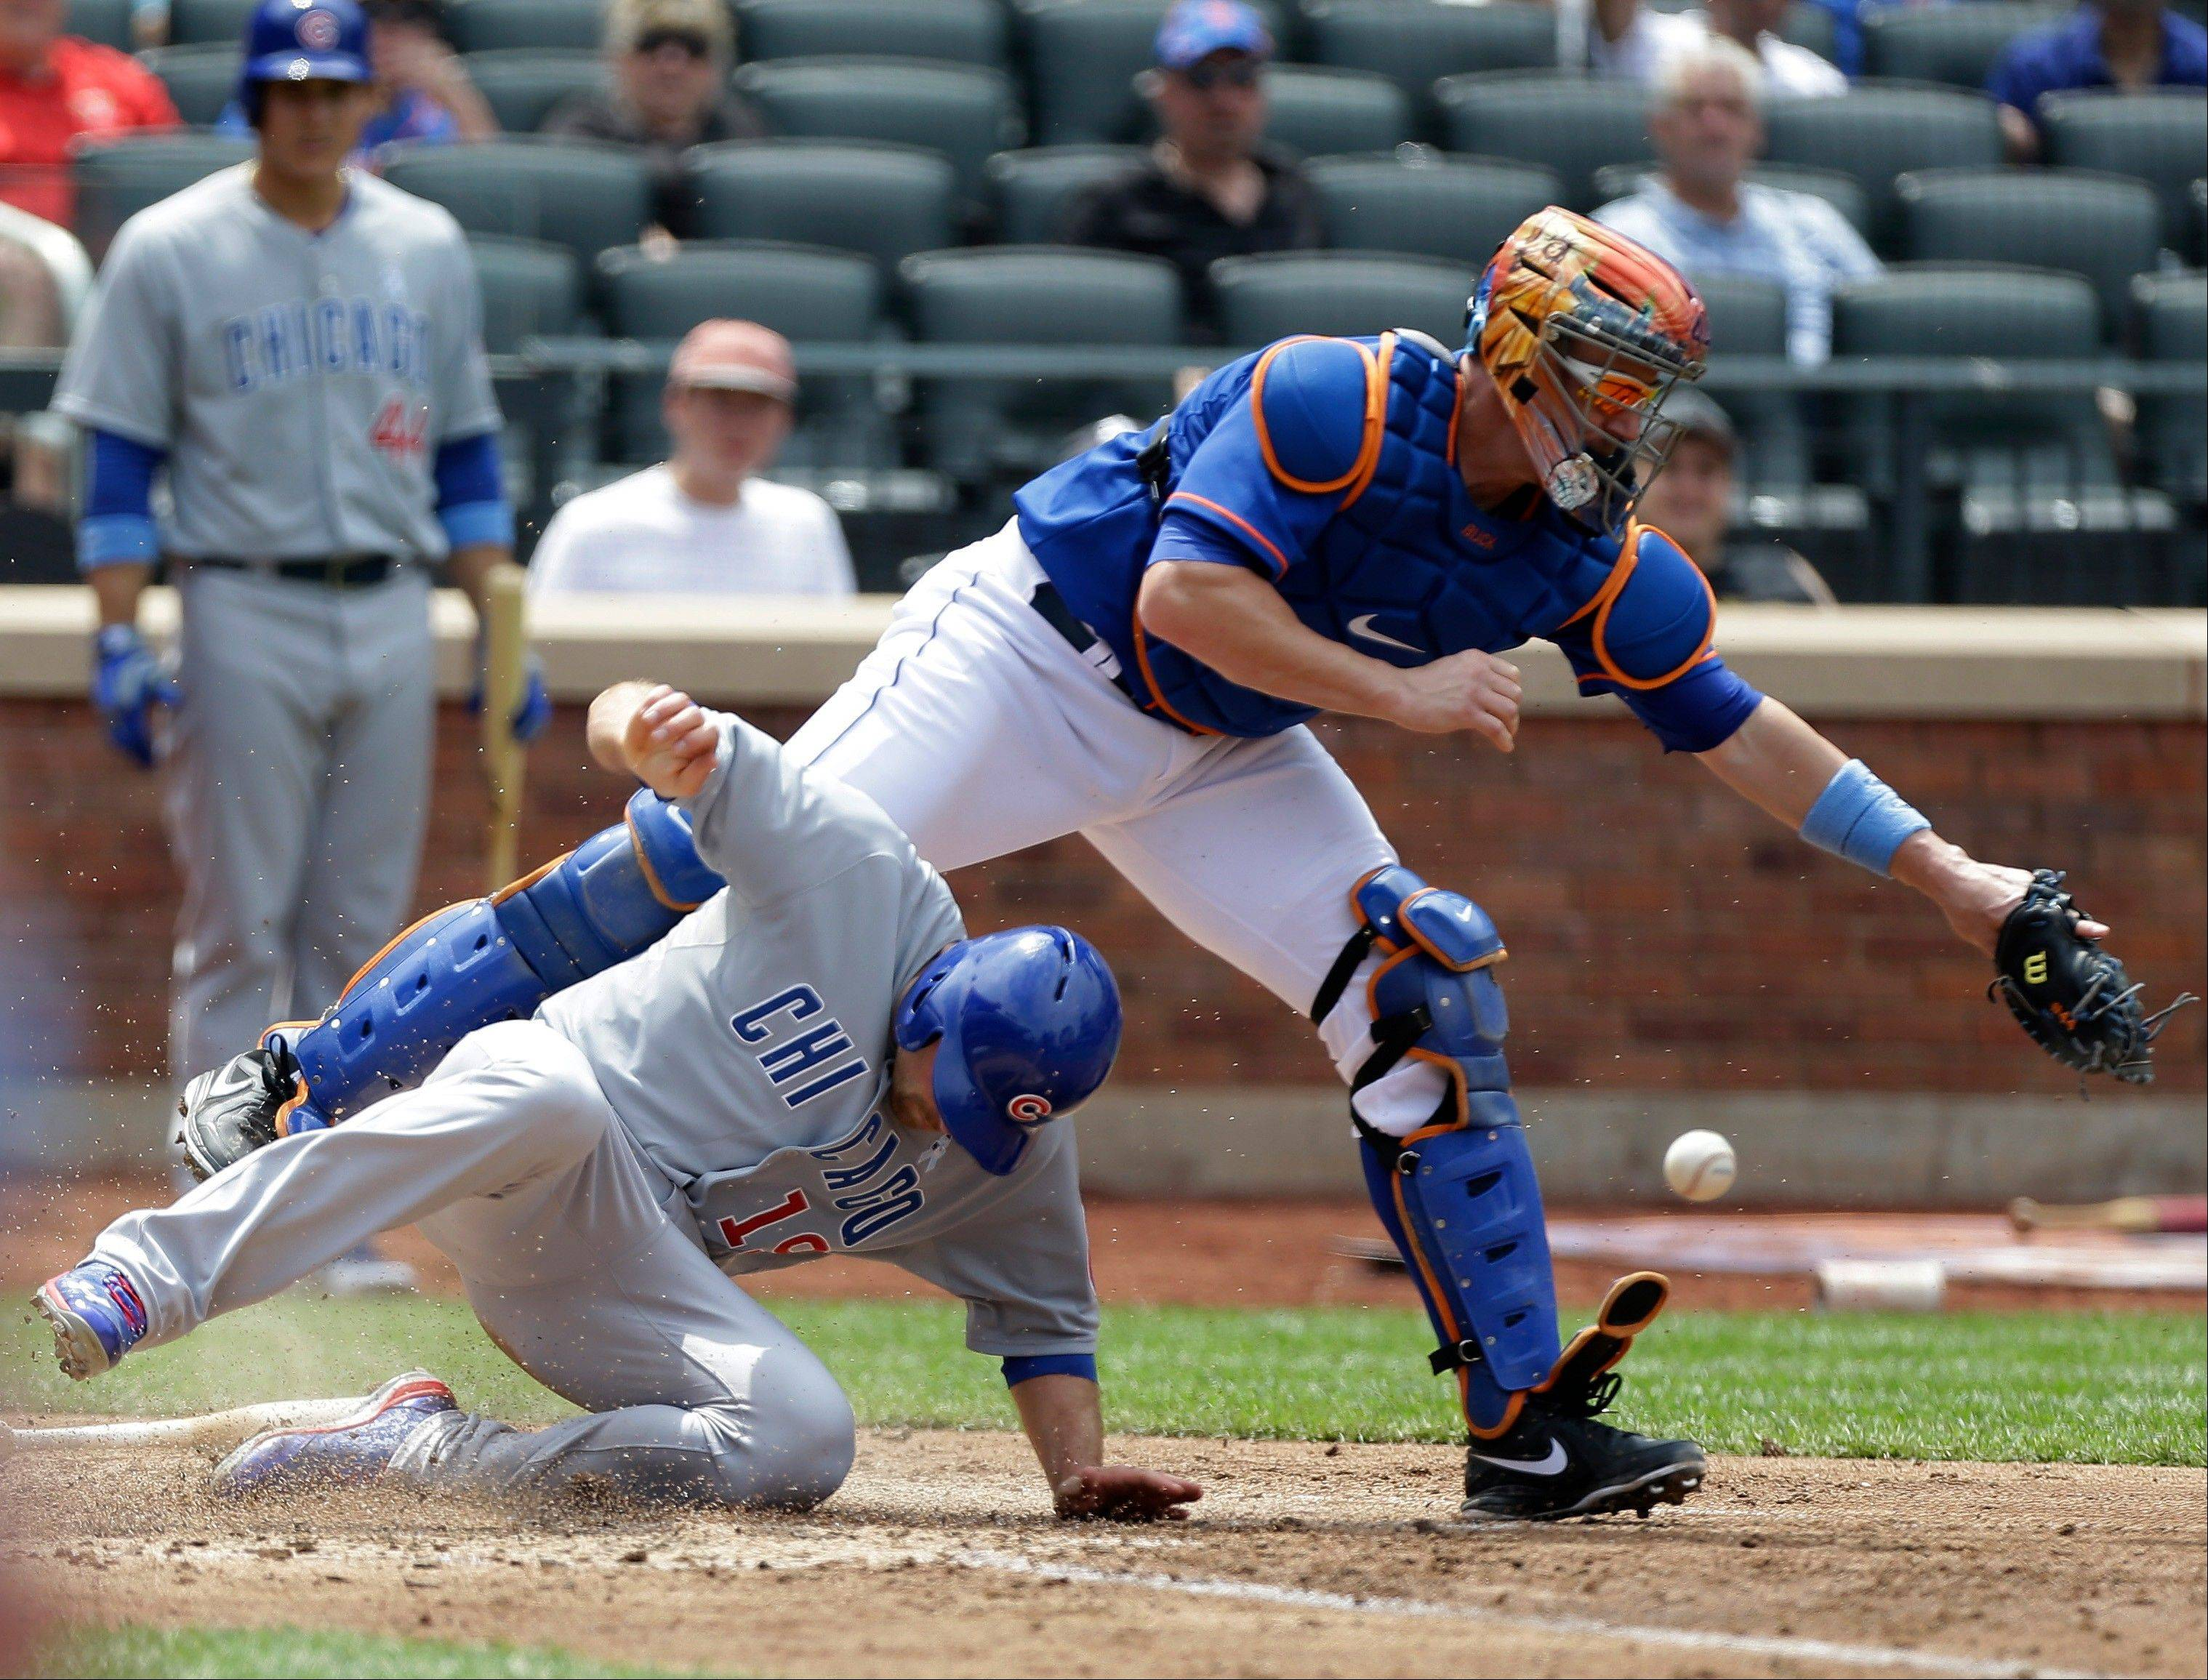 Cubs runner Nate Schierholtz is safe on a Mets throwing error as New York Mets catcher John Buck can't make the play on Alfonso Soriano's fifth-inning, two-run single in Sunday's game in New York.